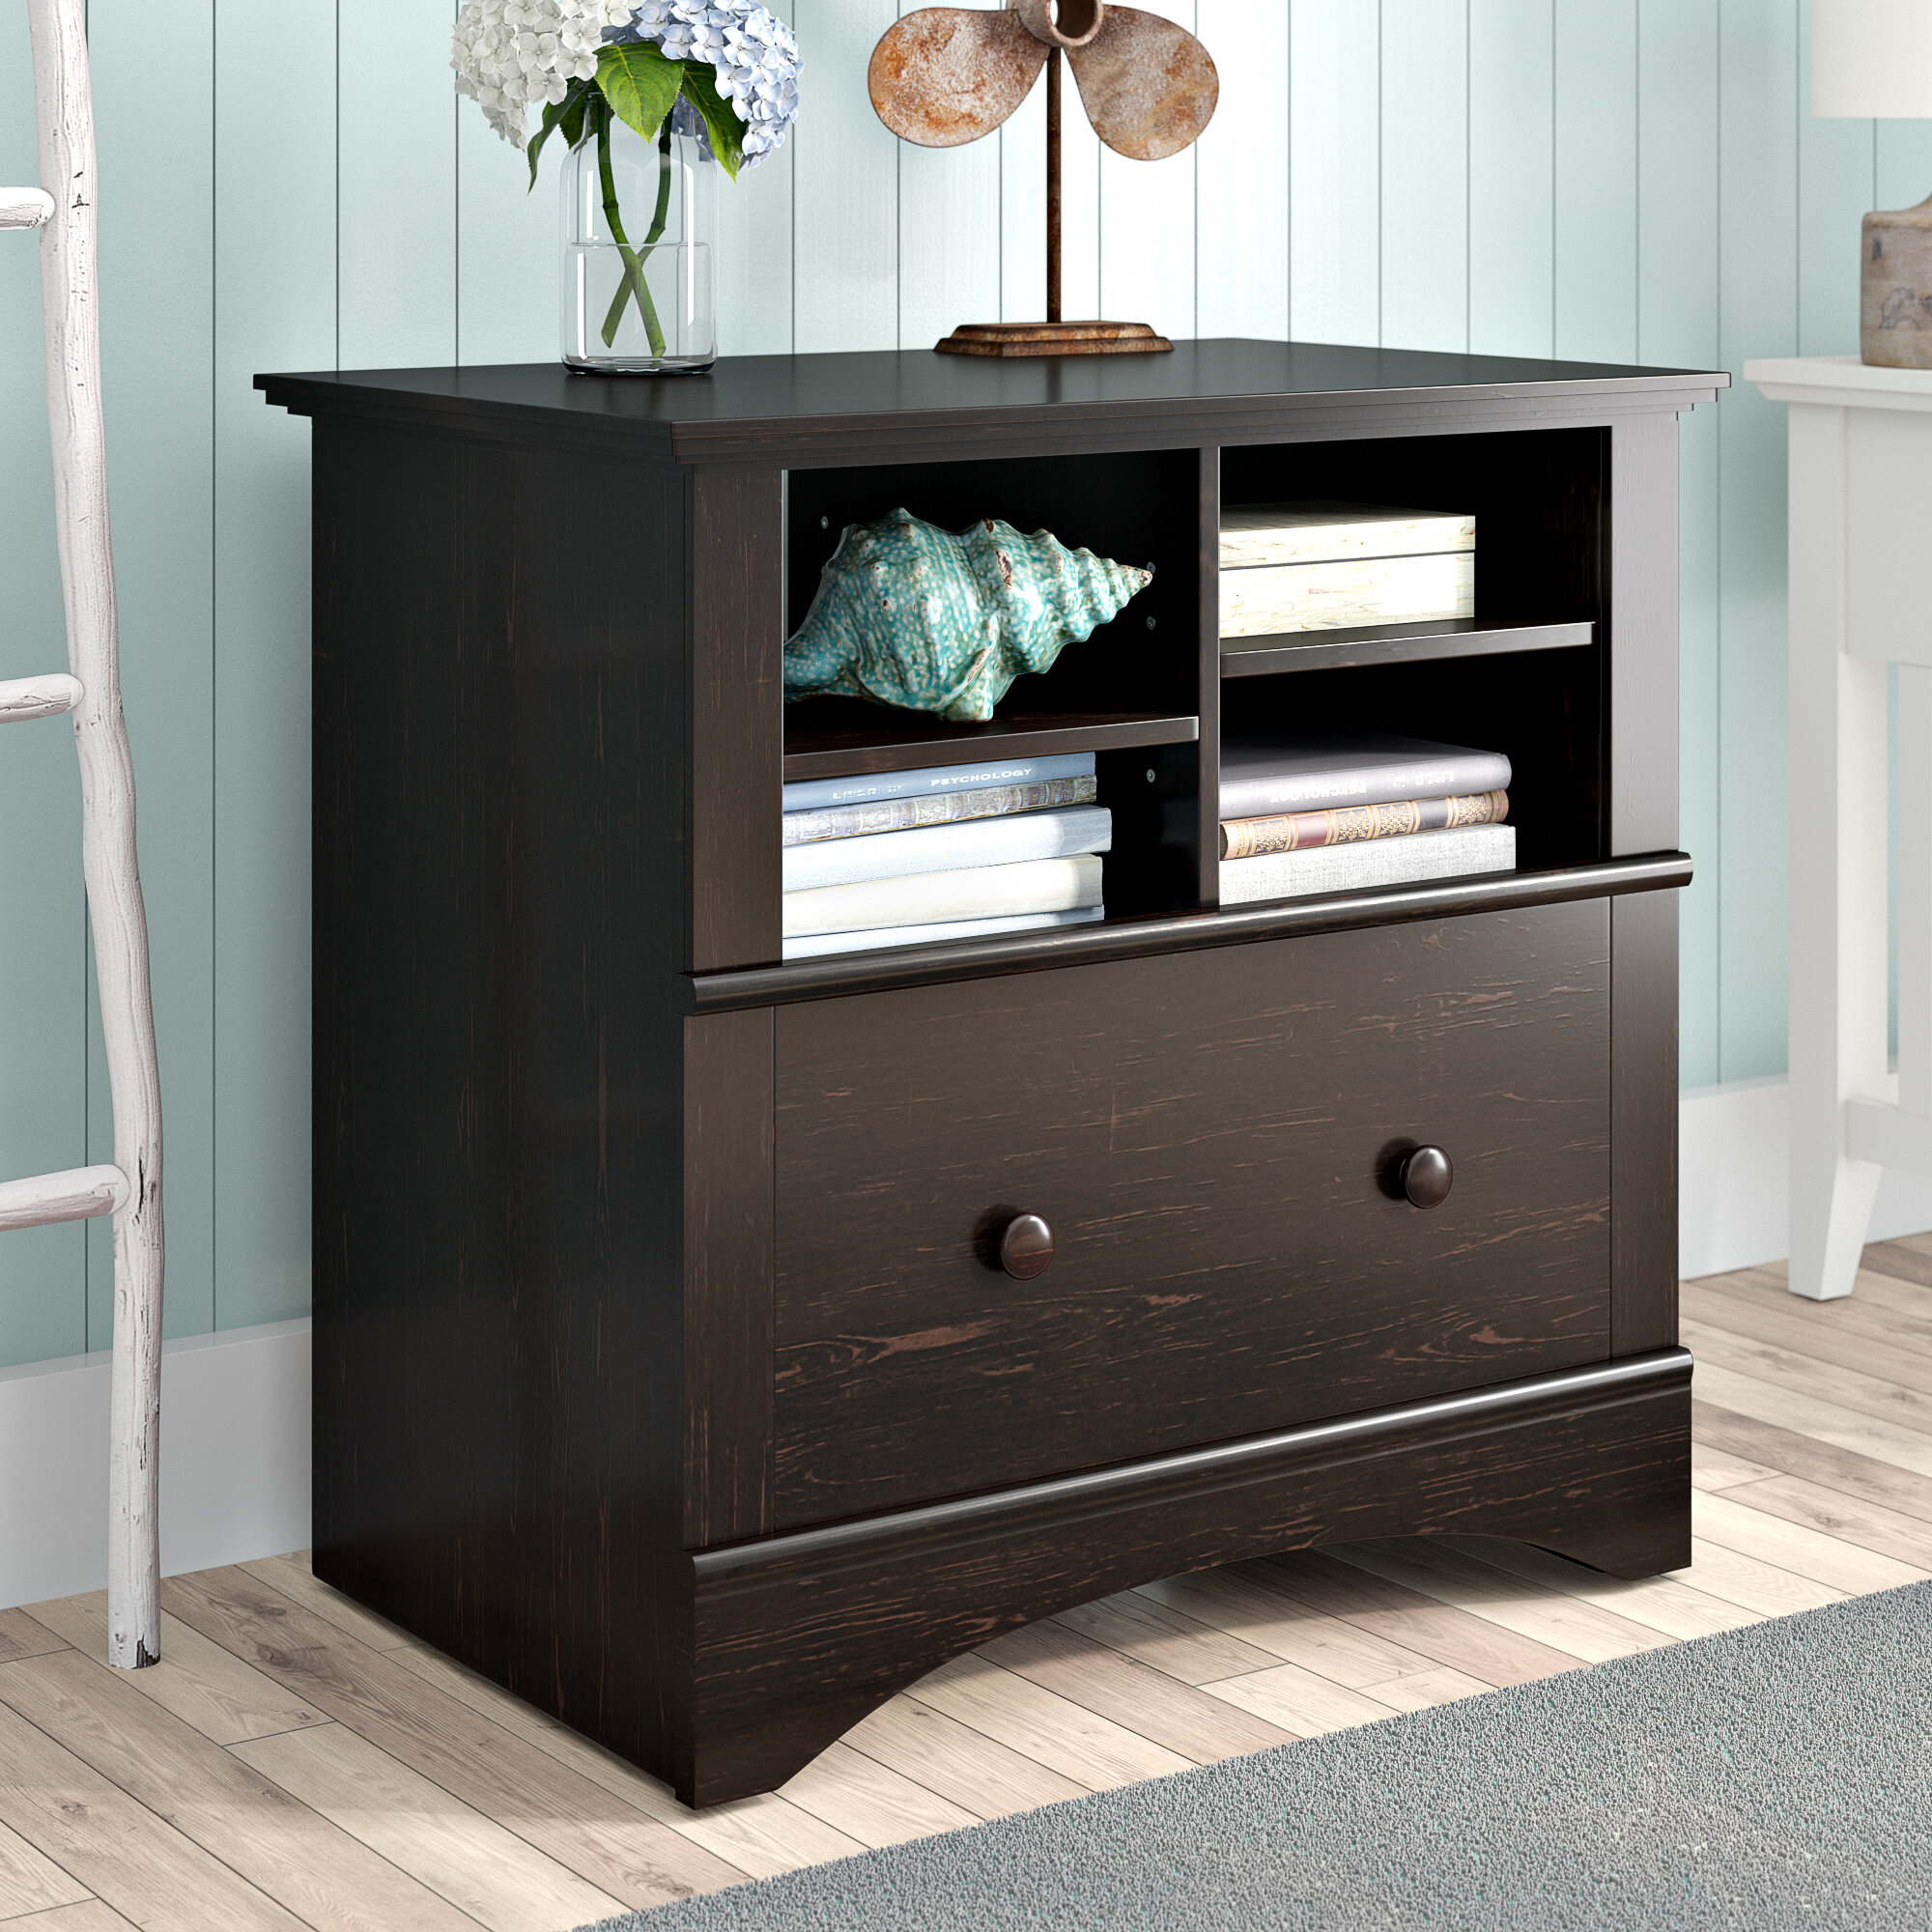 Beachcrest Home Pinellas 1 Drawer Lateral Filing Cabinet Reviews Wayfair